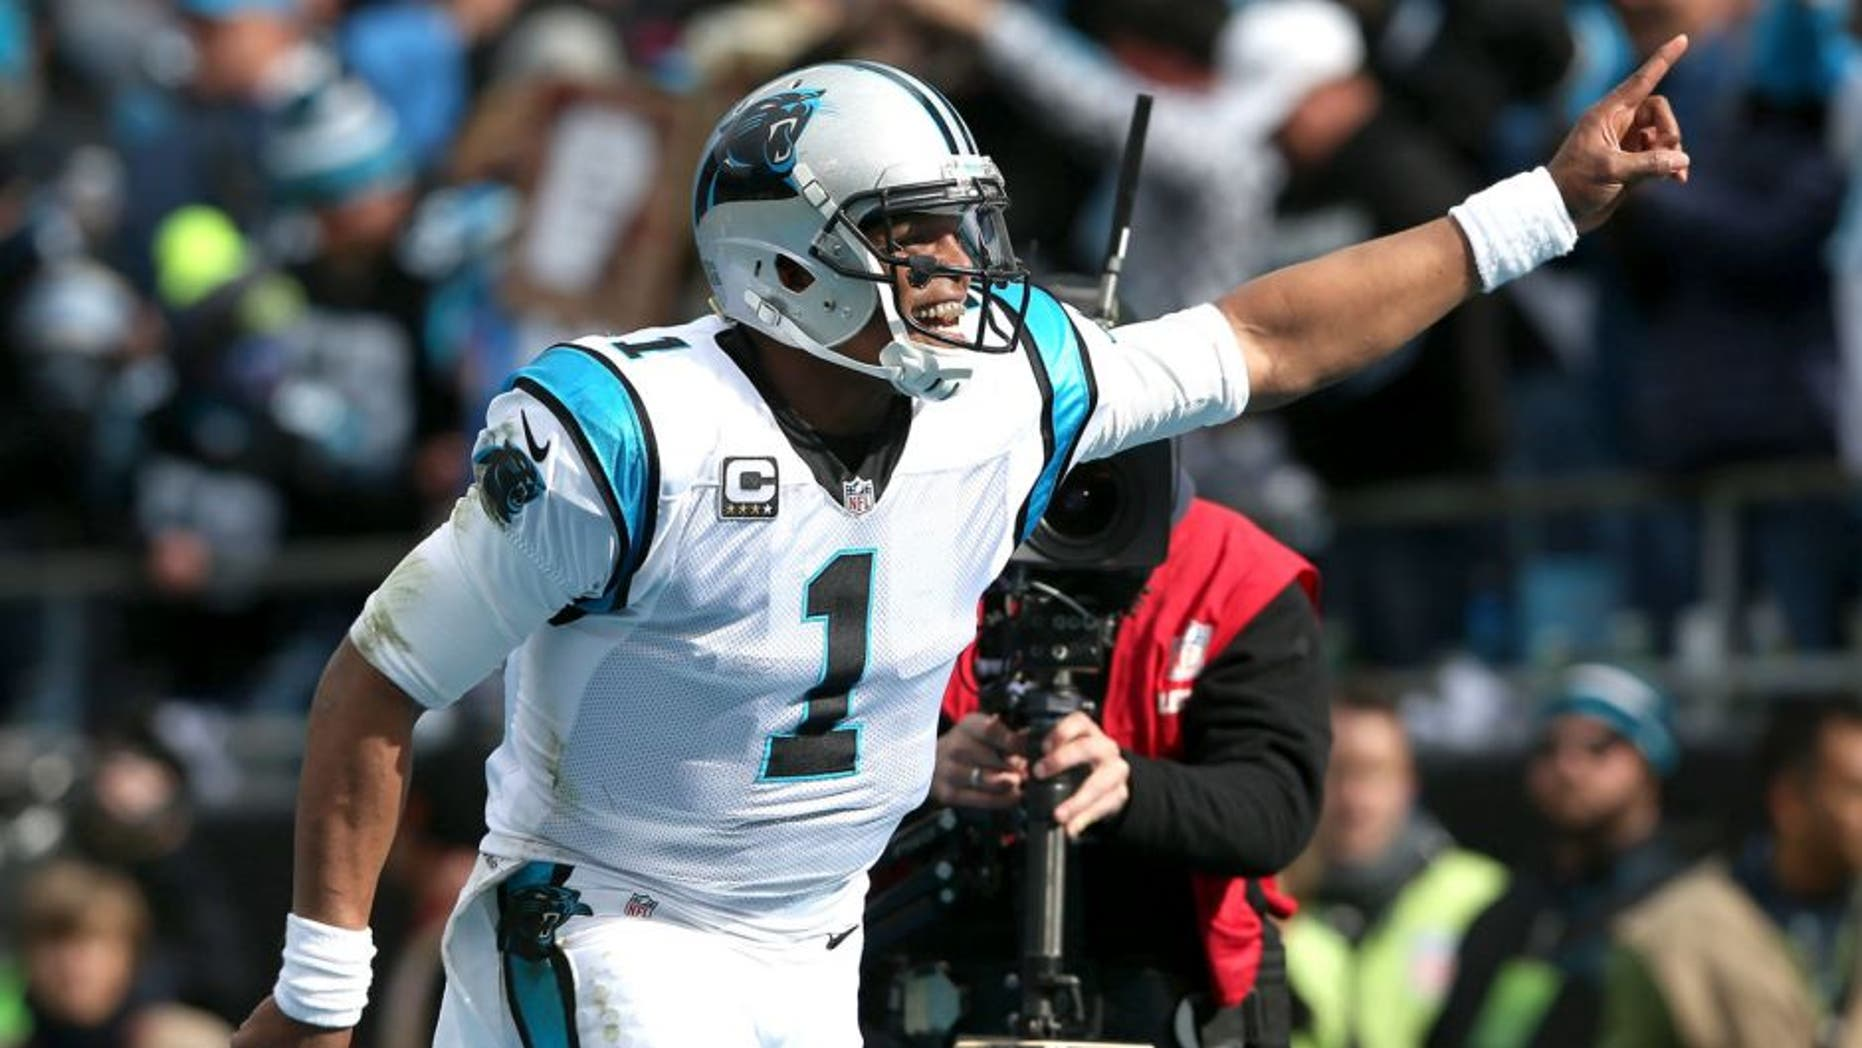 CHARLOTTE, NC - JANUARY 17: Cam Newton #1 of the Carolina Panthers celebrates after a touchdown during the NFC Divisional Playoff Game against the Seattle Seahawks at Bank of America Stadium on January 17, 2016 in Charlotte, North Carolina. (Photo by Streeter Lecka/Getty Images)